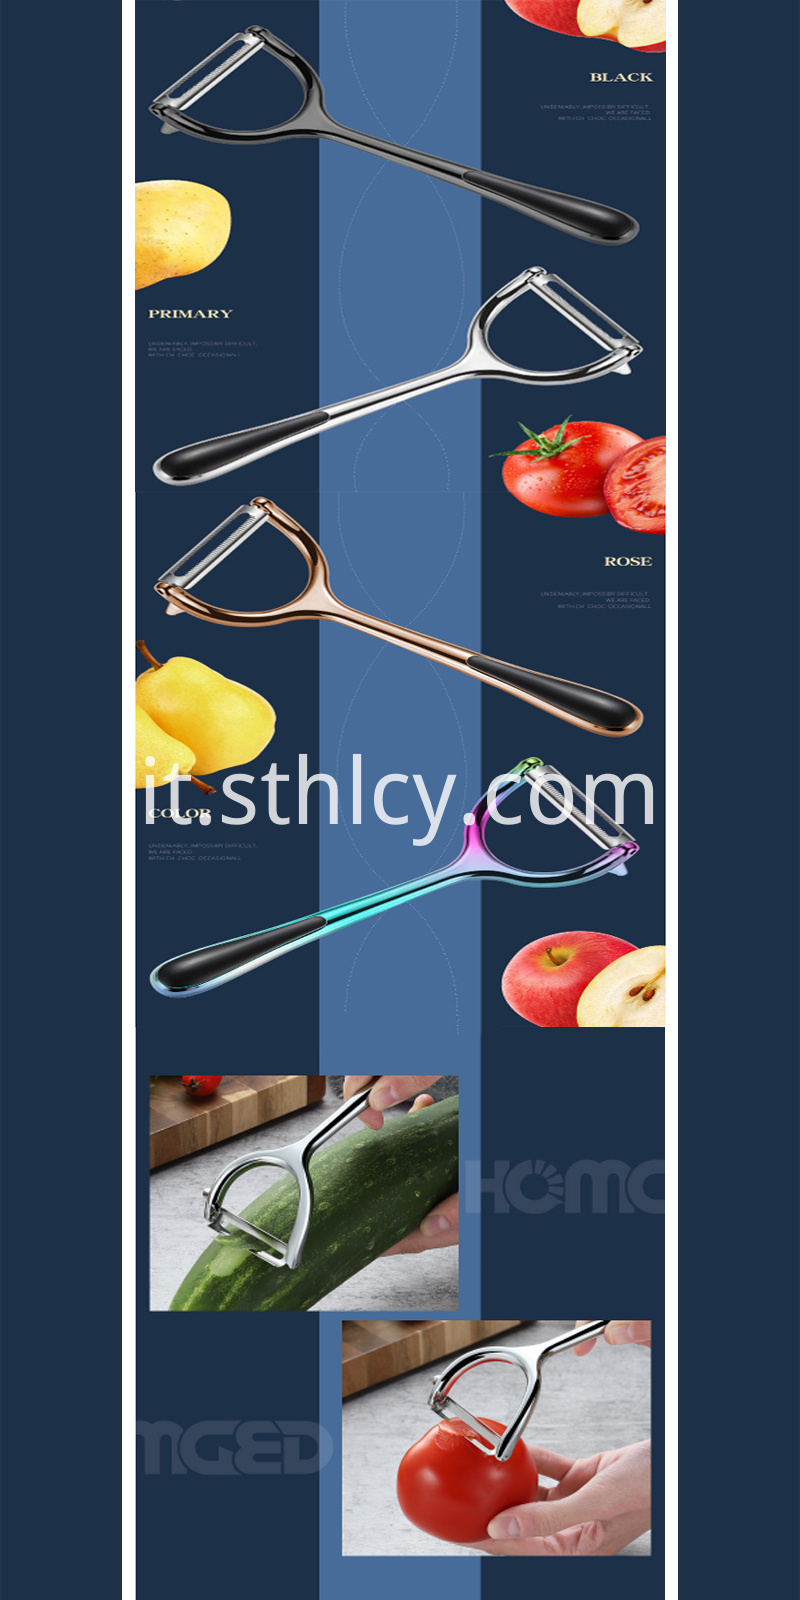 vegetable peeler cutter